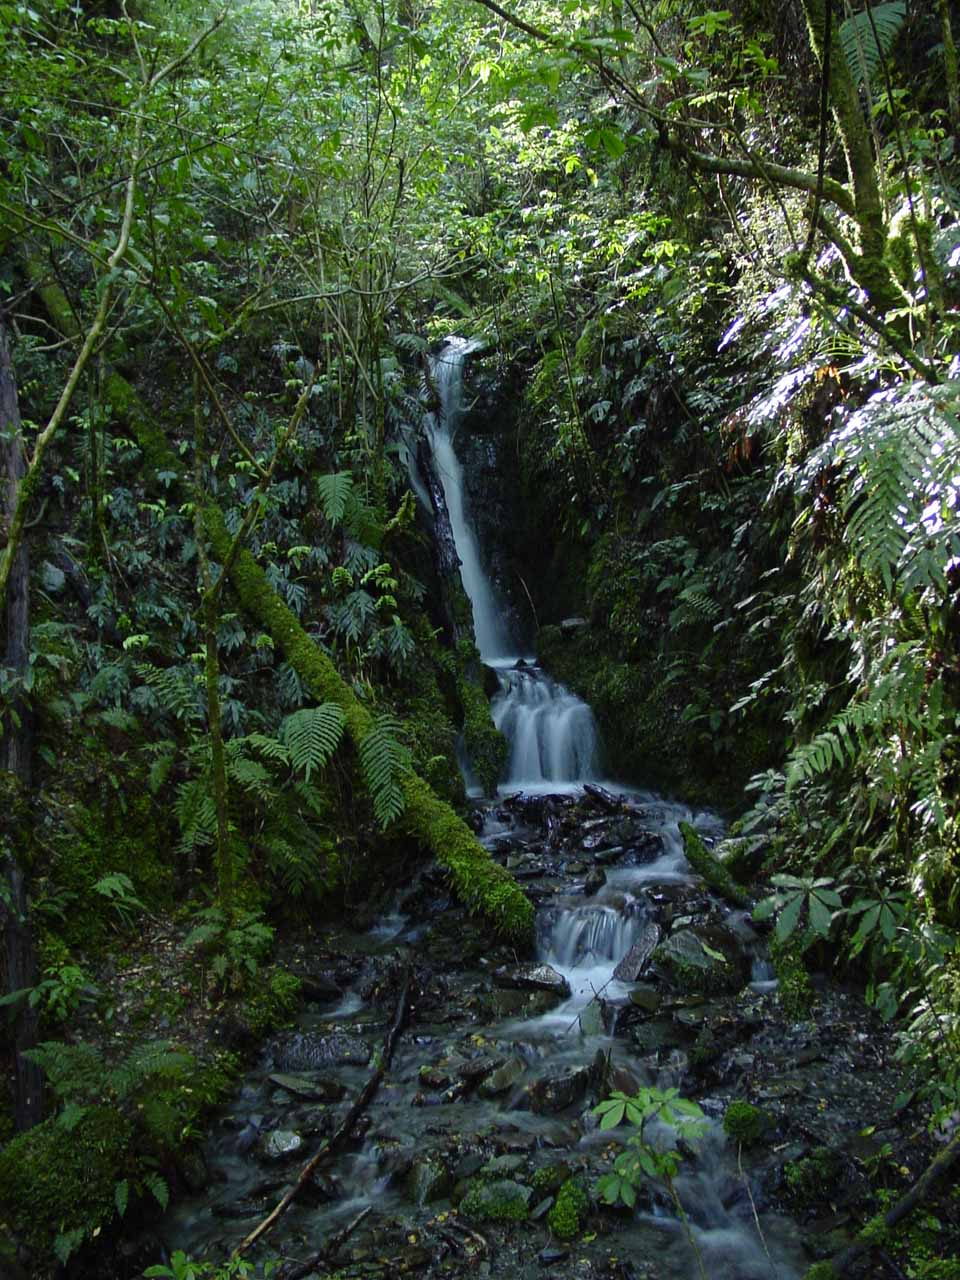 This was the tiny cascade I saw at the start of the Waterfall Walk